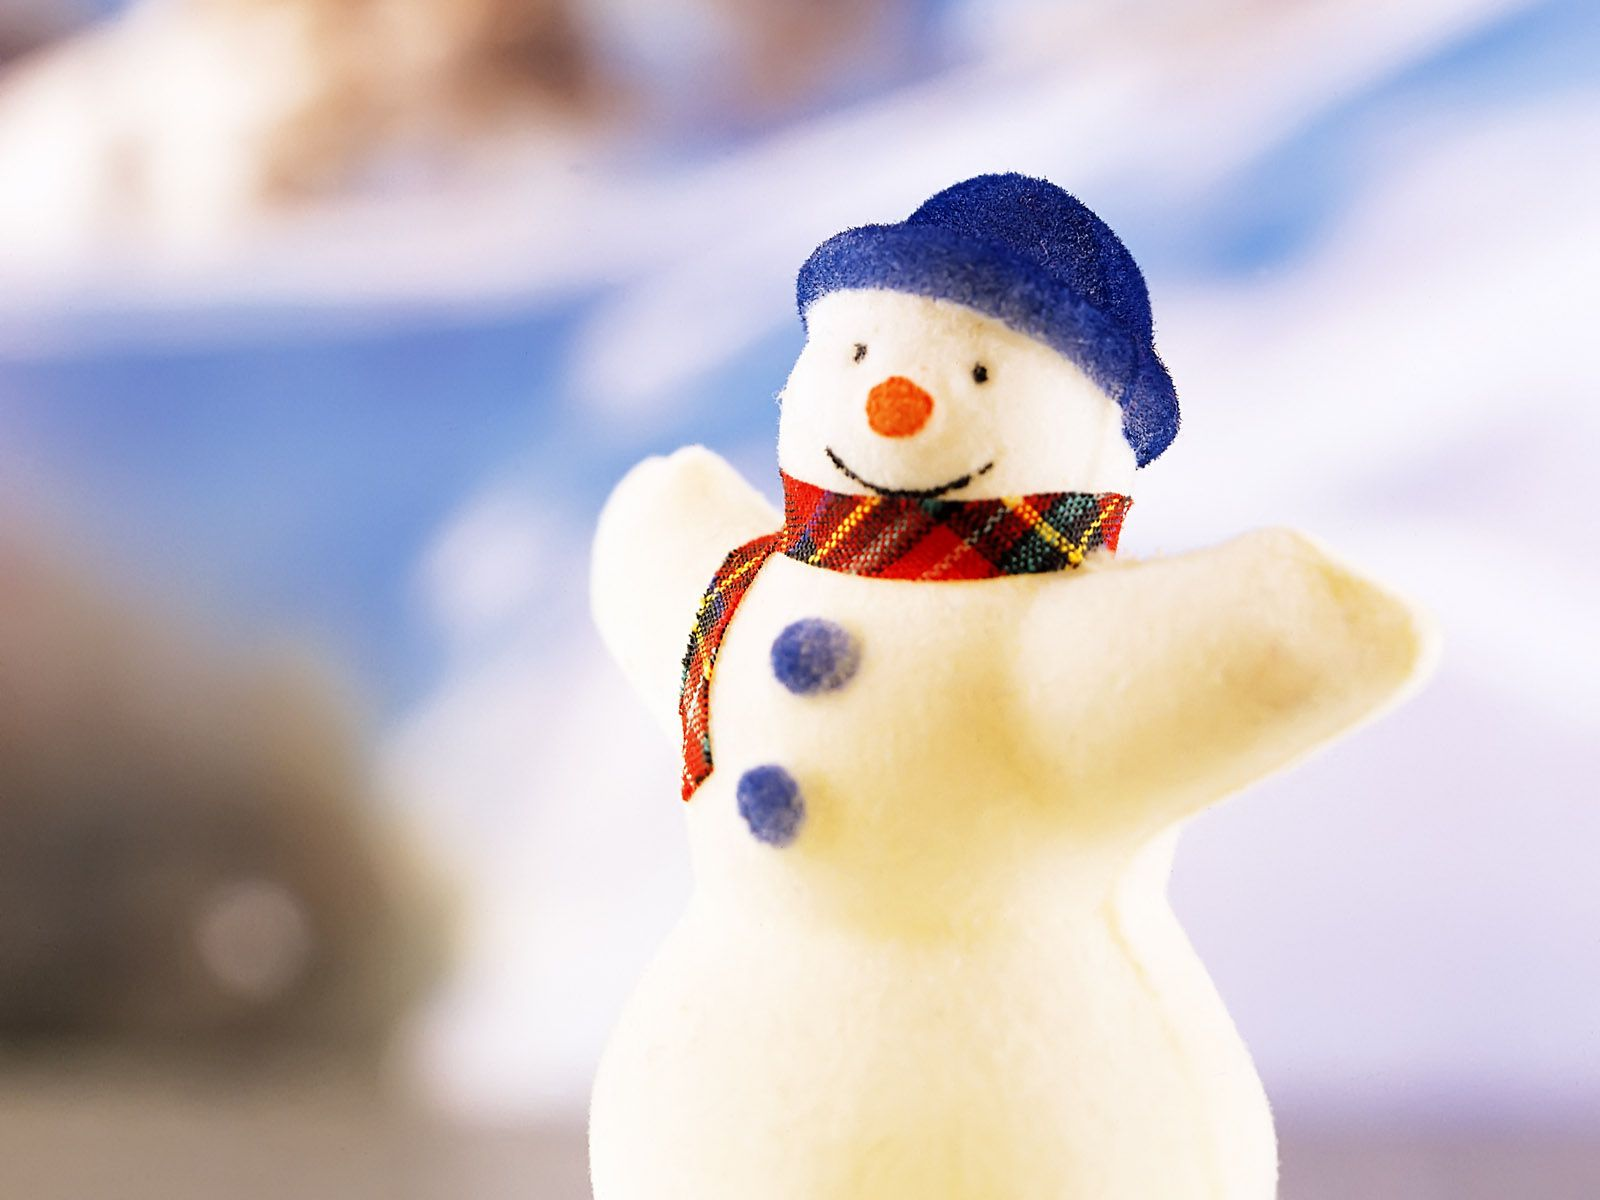 A Snowman With Blue Hat And Plaid Scarf